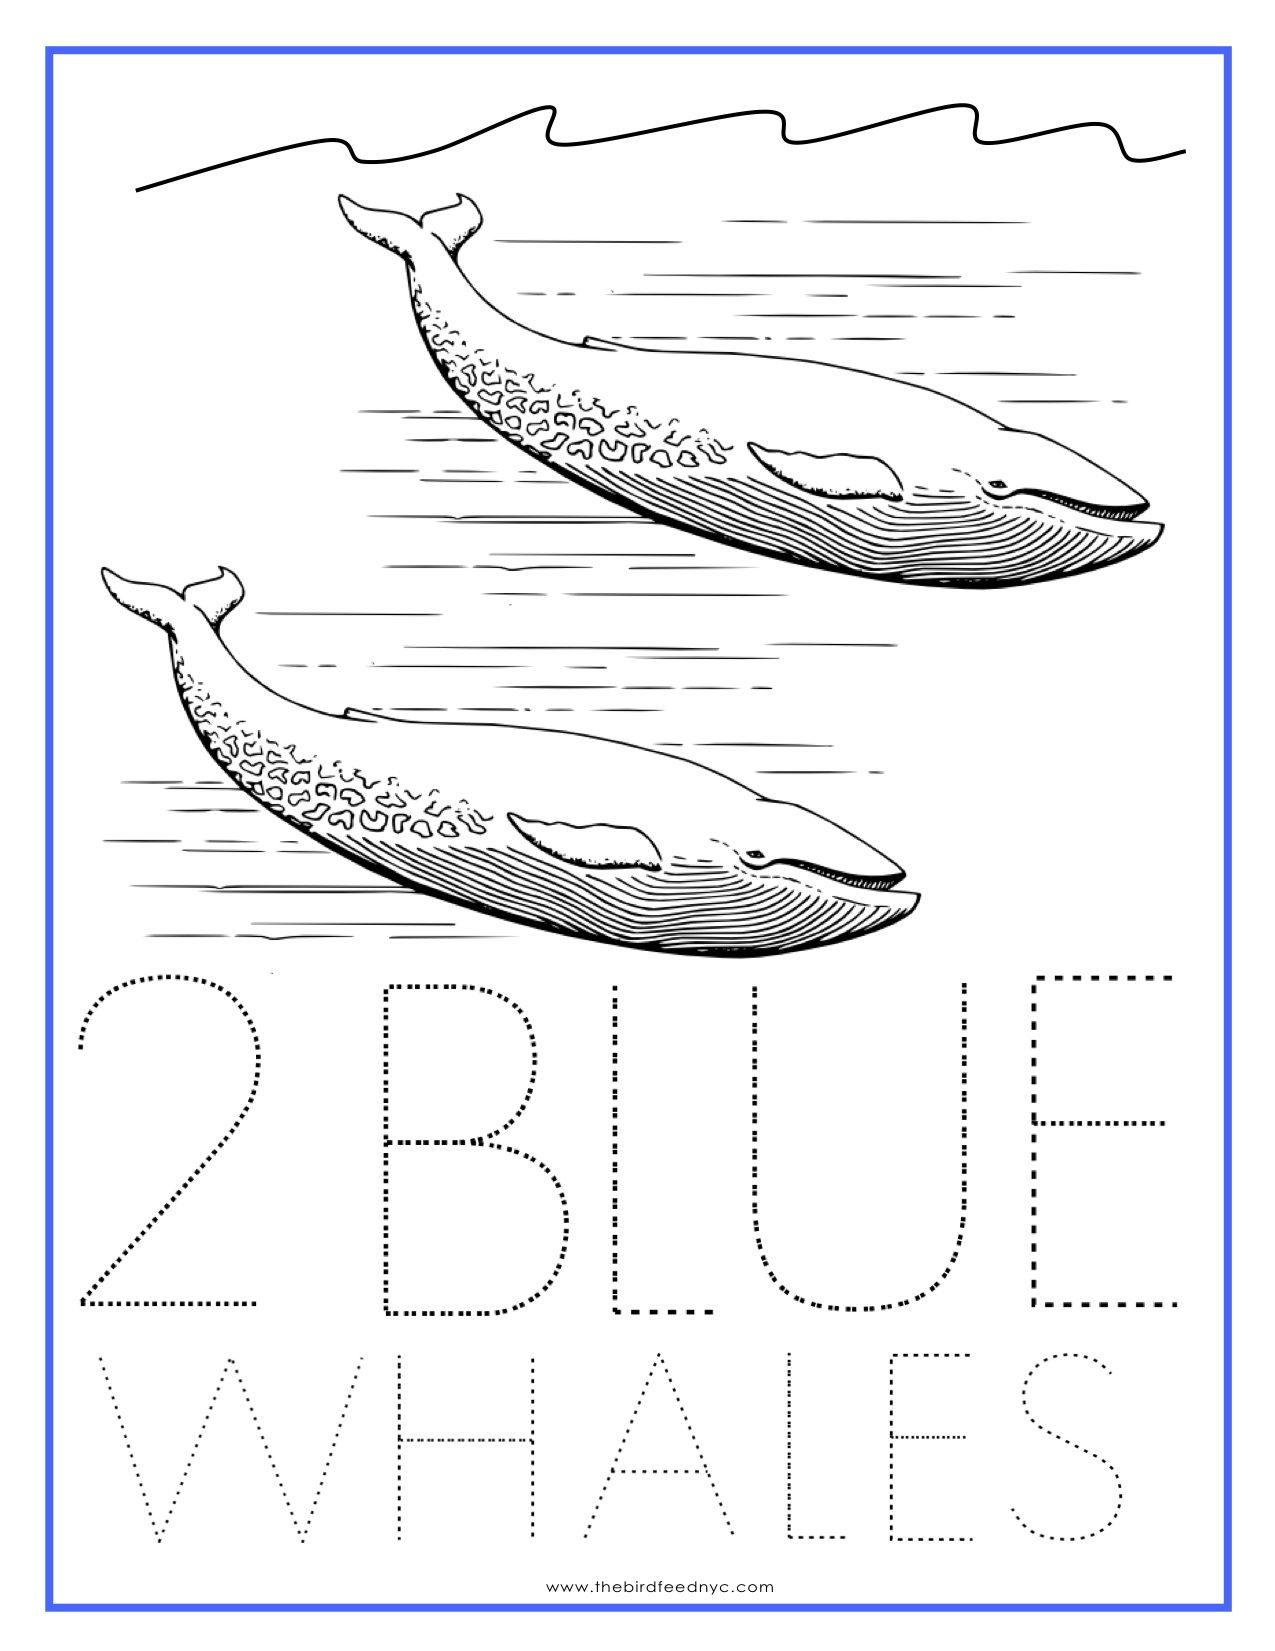 Numbers Coloring Sheet 2 Blue Whales